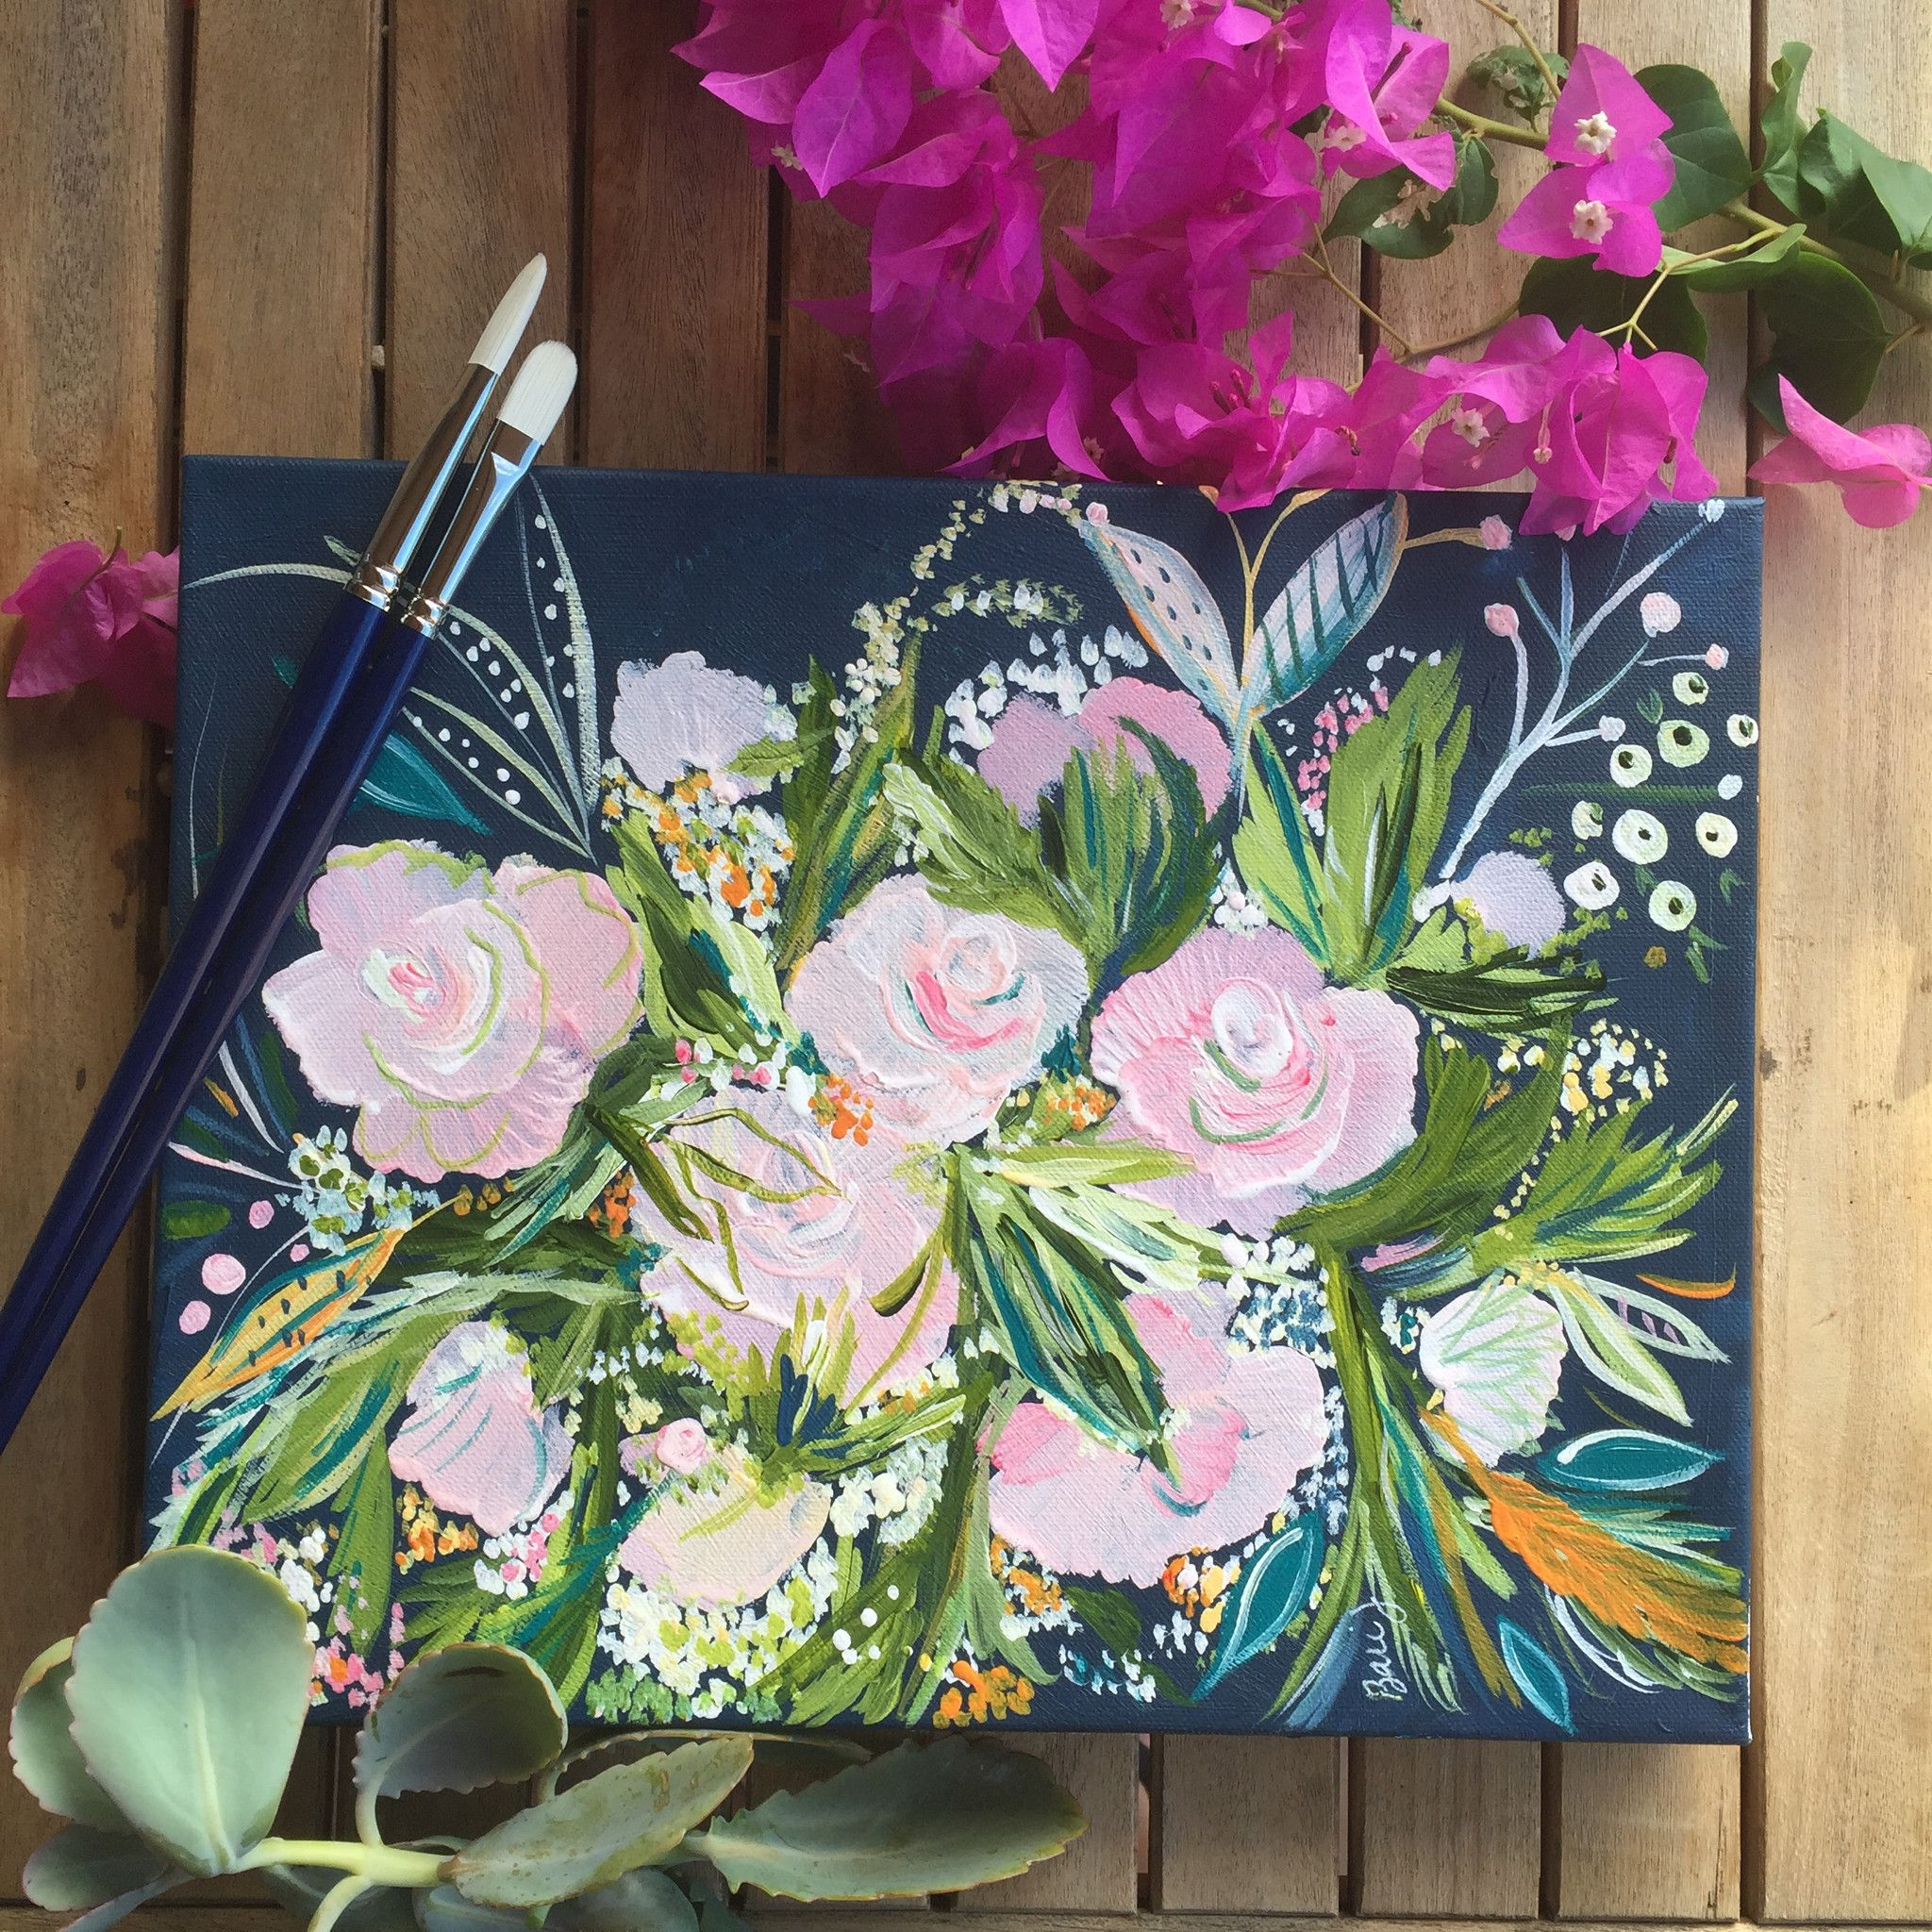 Custom Bouquet Painting | Bari, Paintings and Fantasy paintings